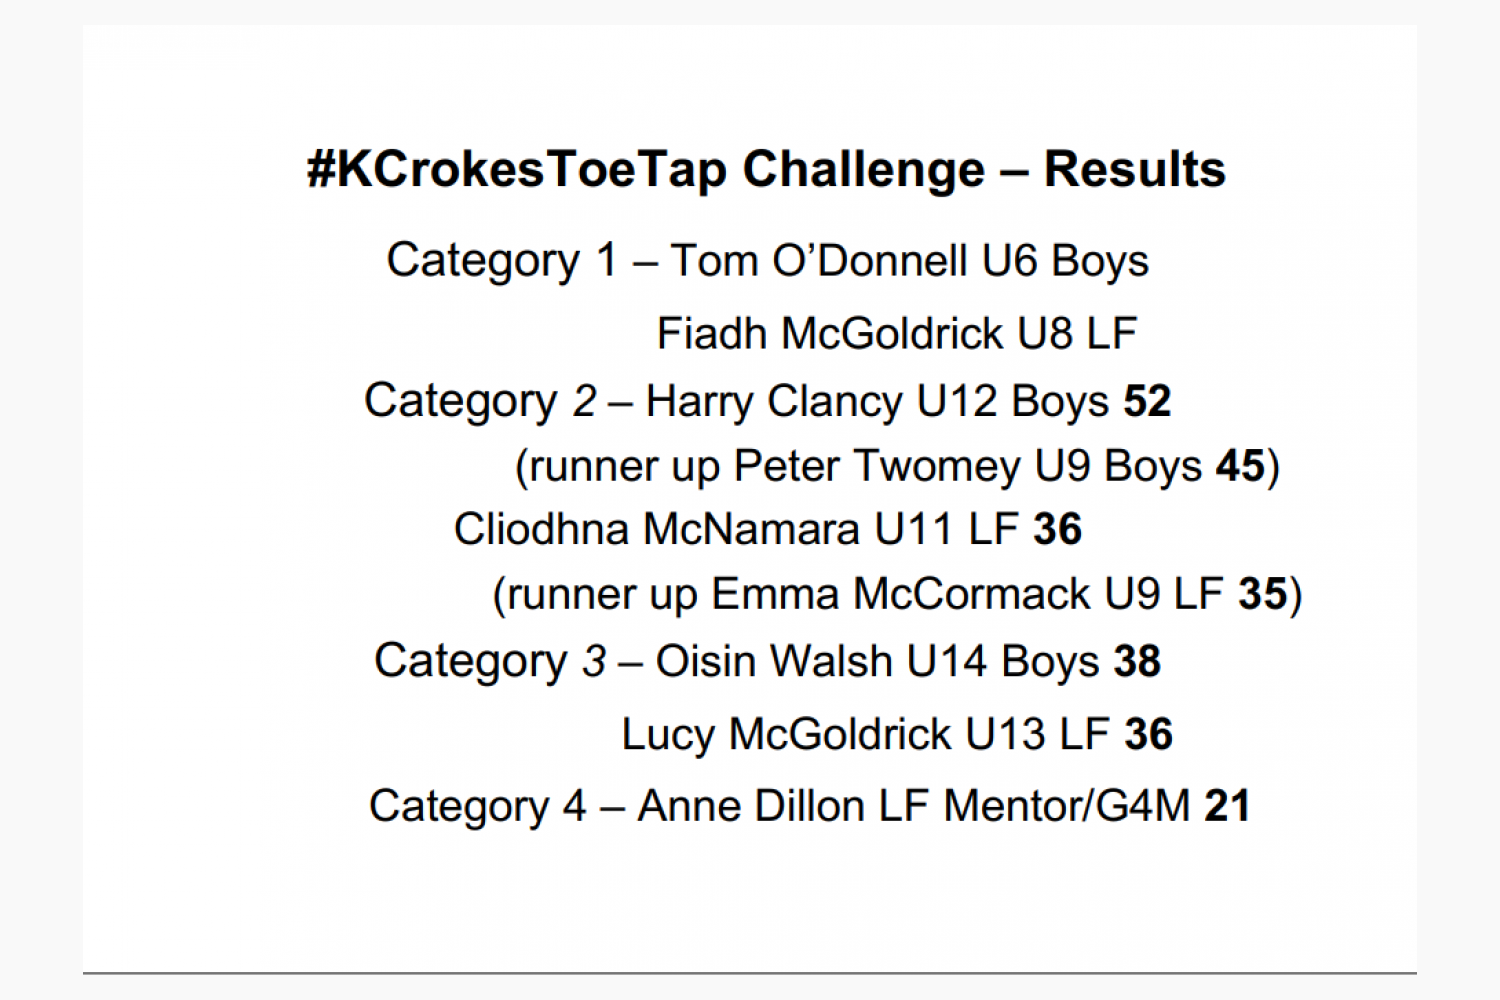 Kilmacud Crokes - Toe Tap/Solo Run challenge -  Details of Competition Winners below